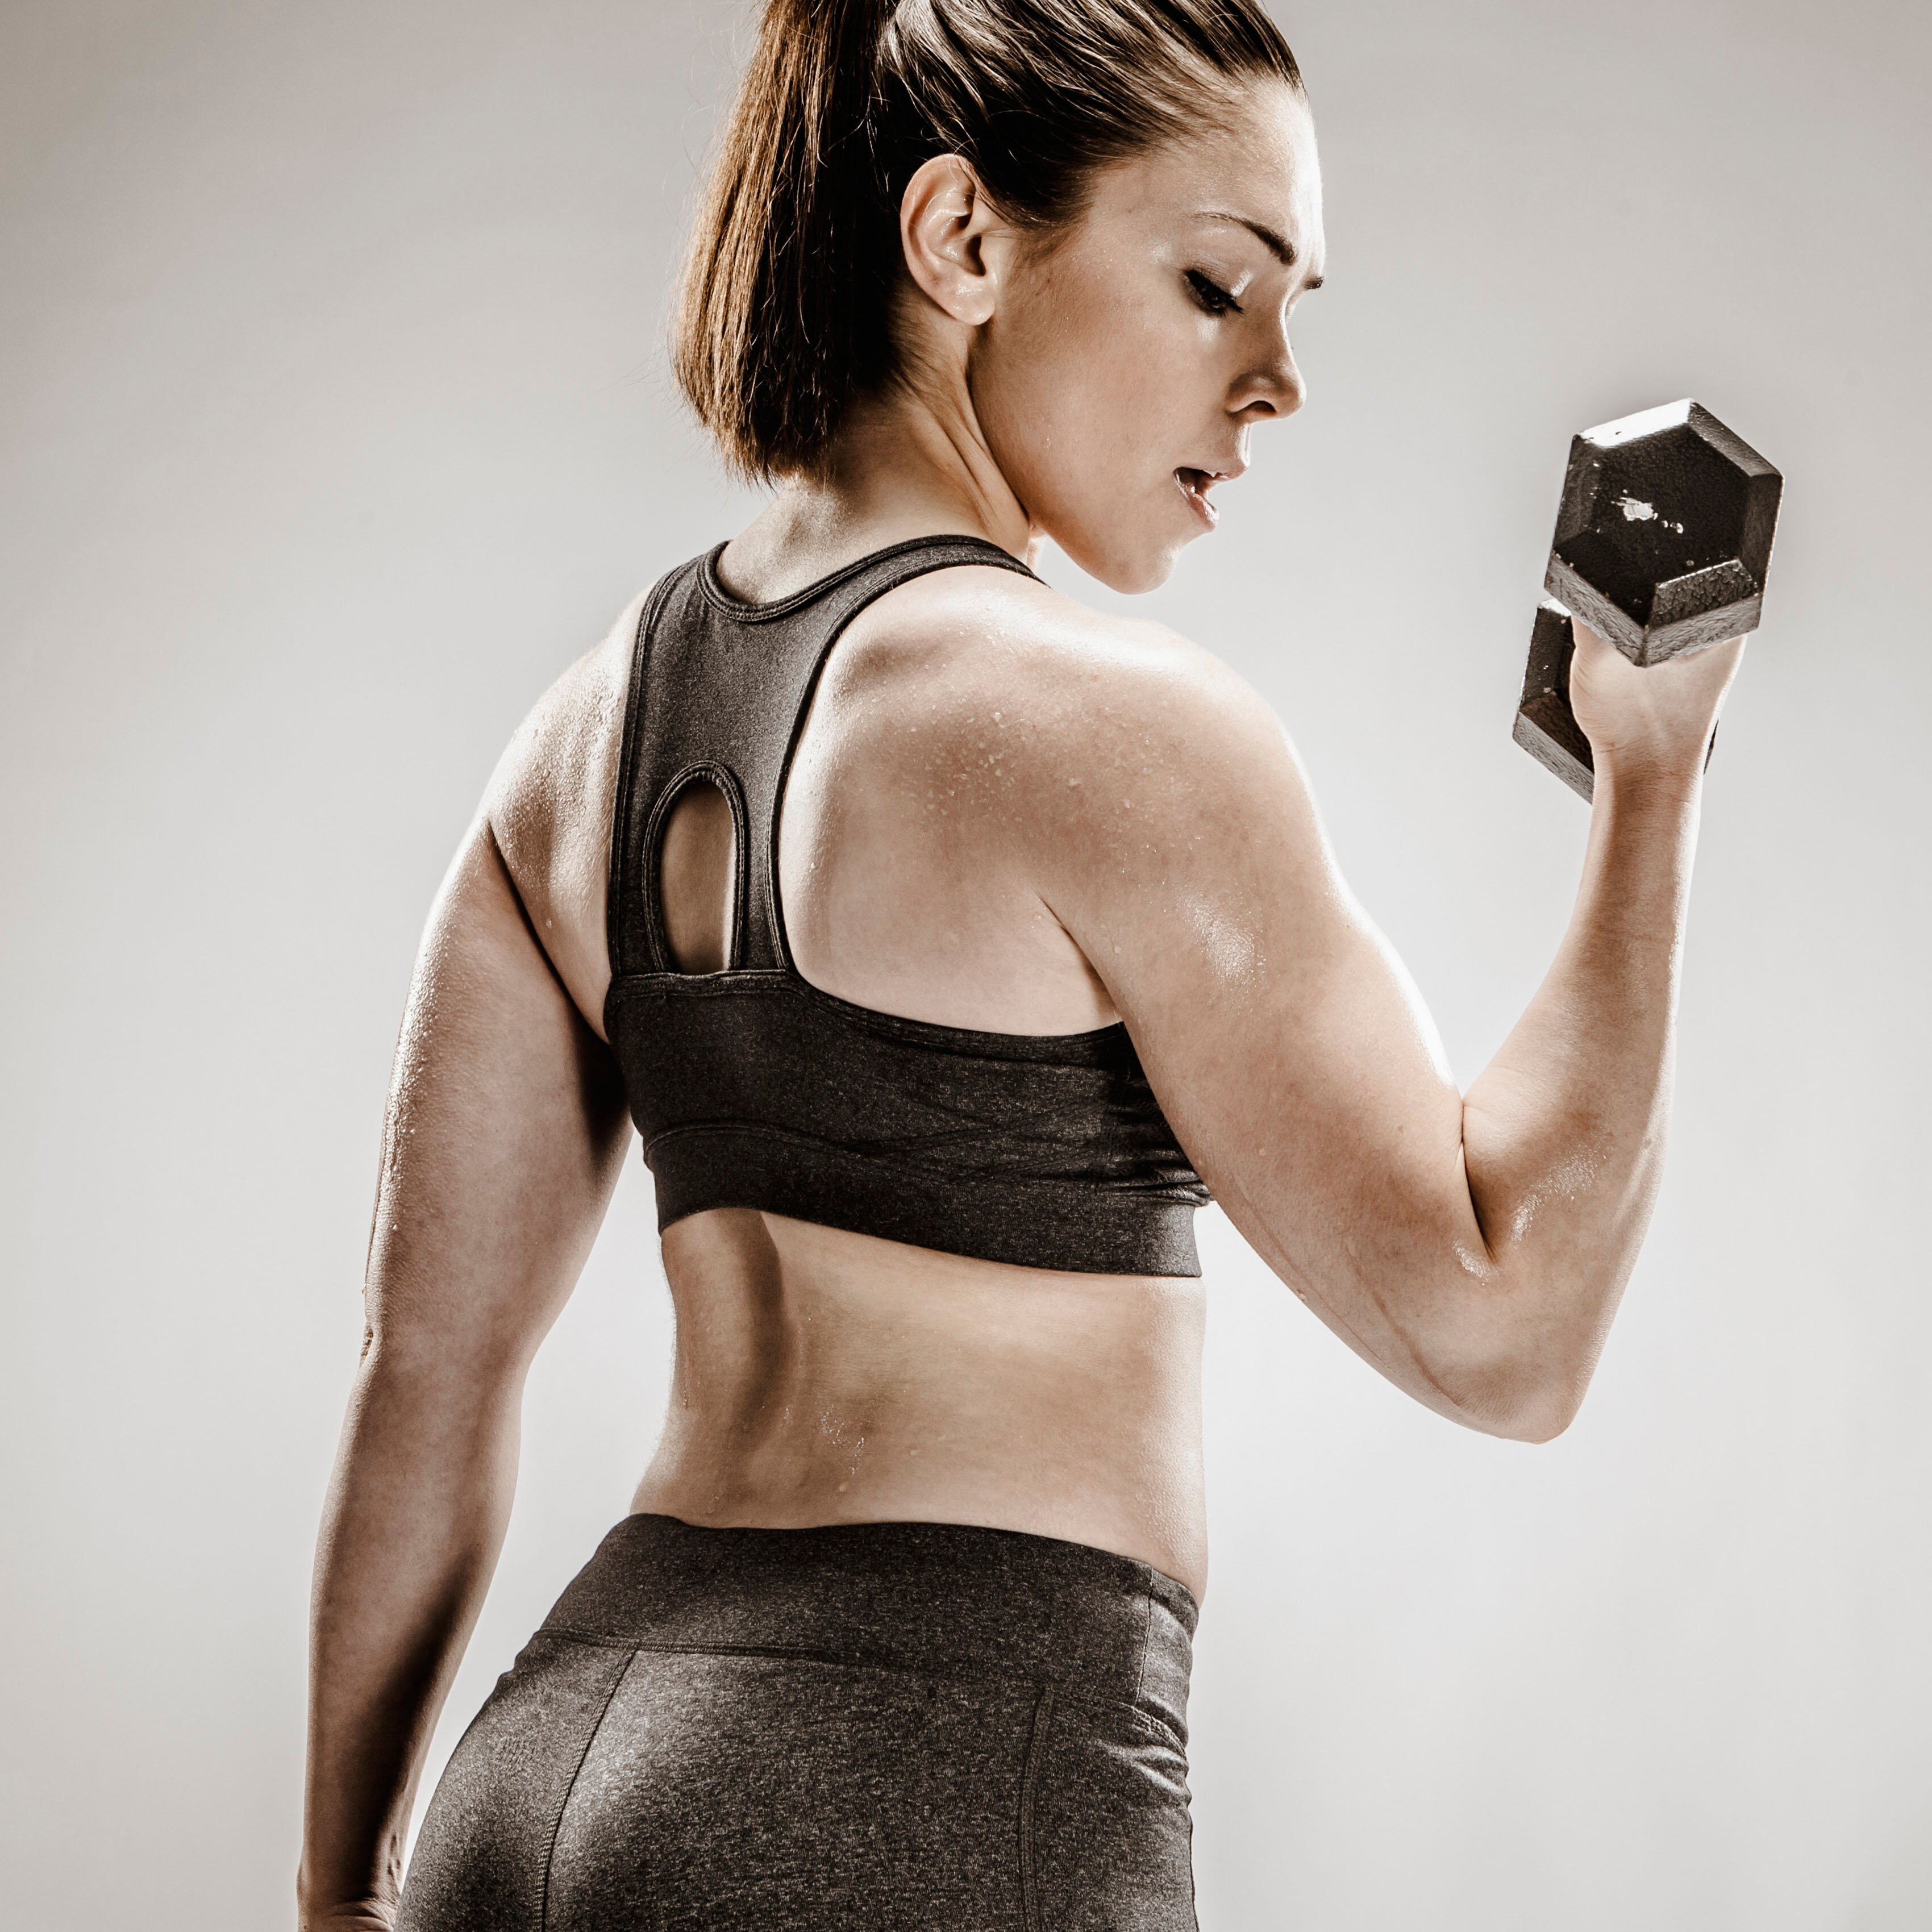 Workout Routines for Women: 4-Week Weight Training Plan | Shape